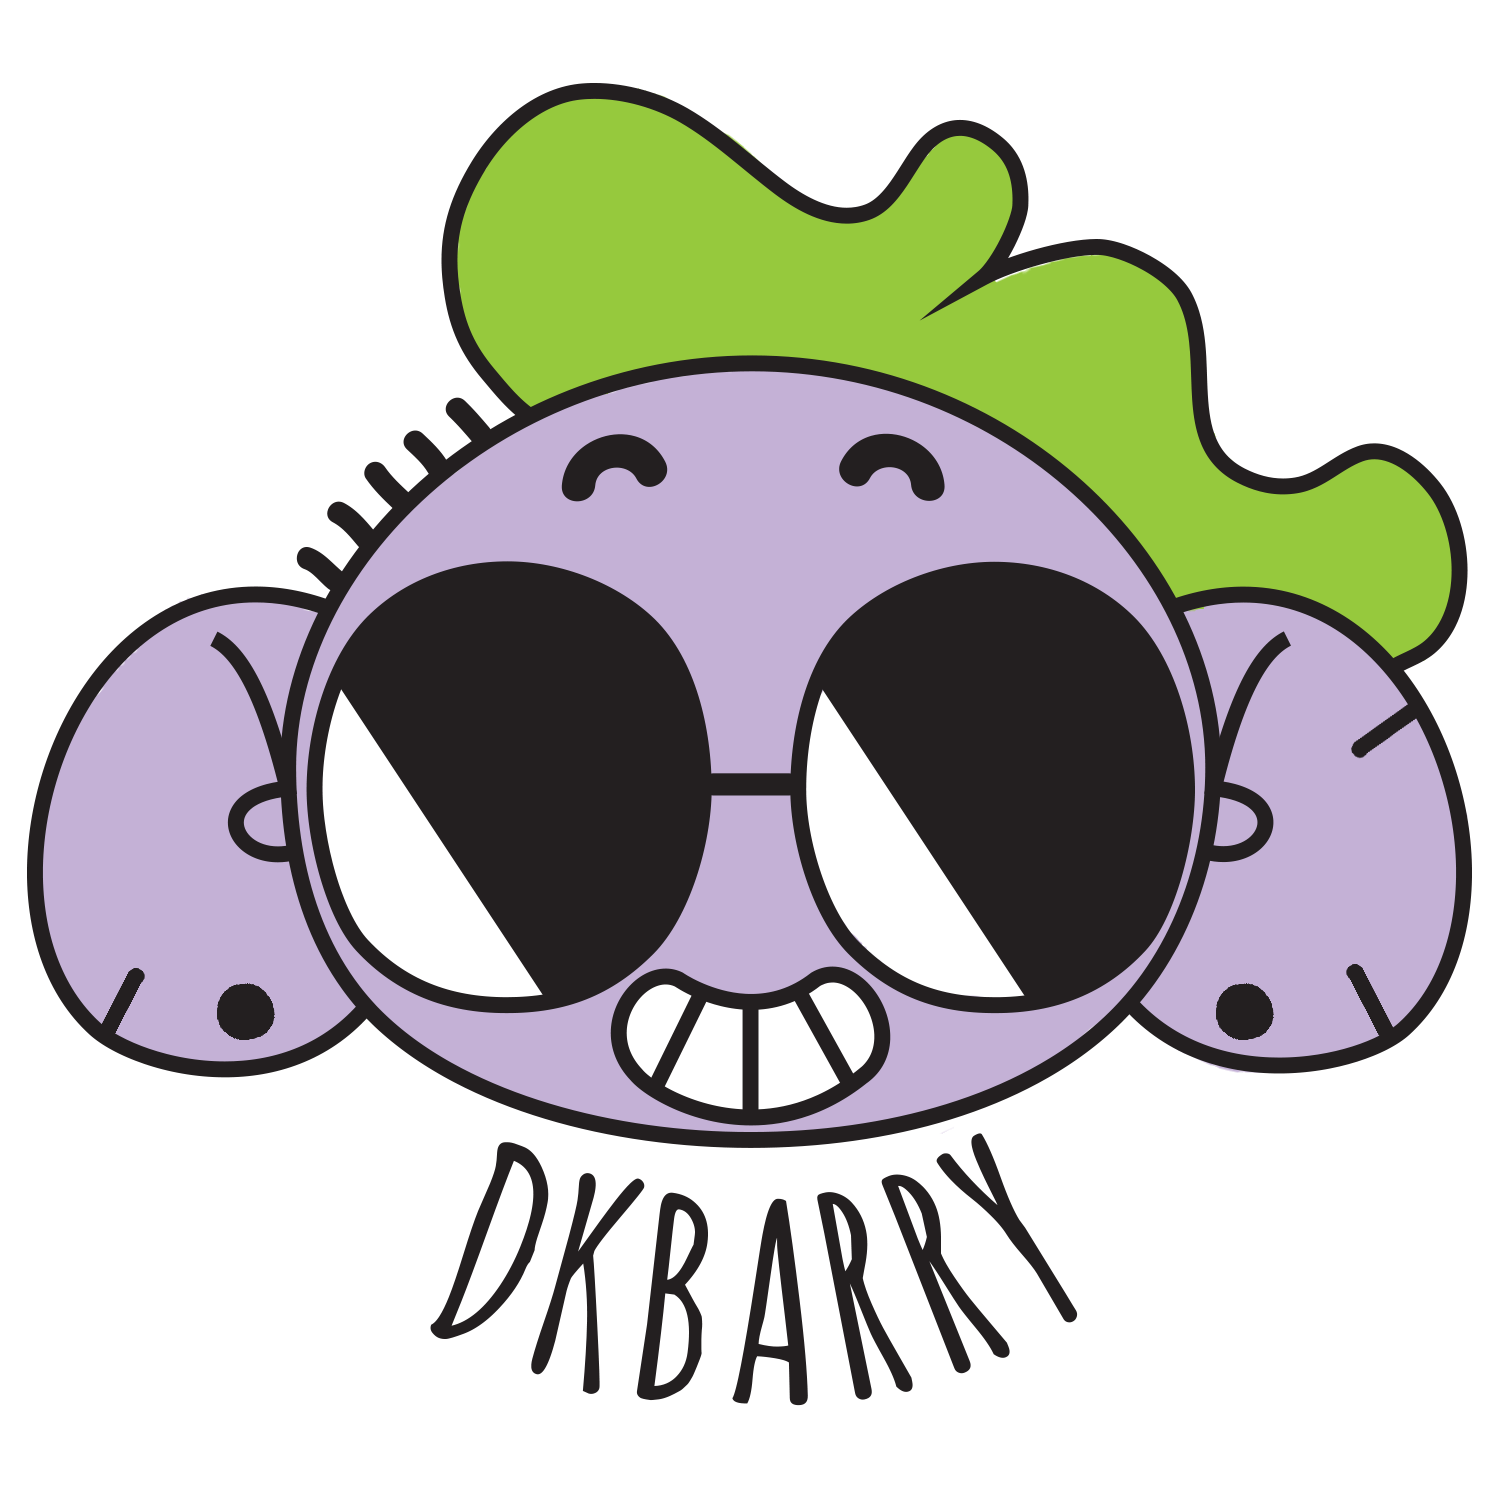 DKBarry Illustration